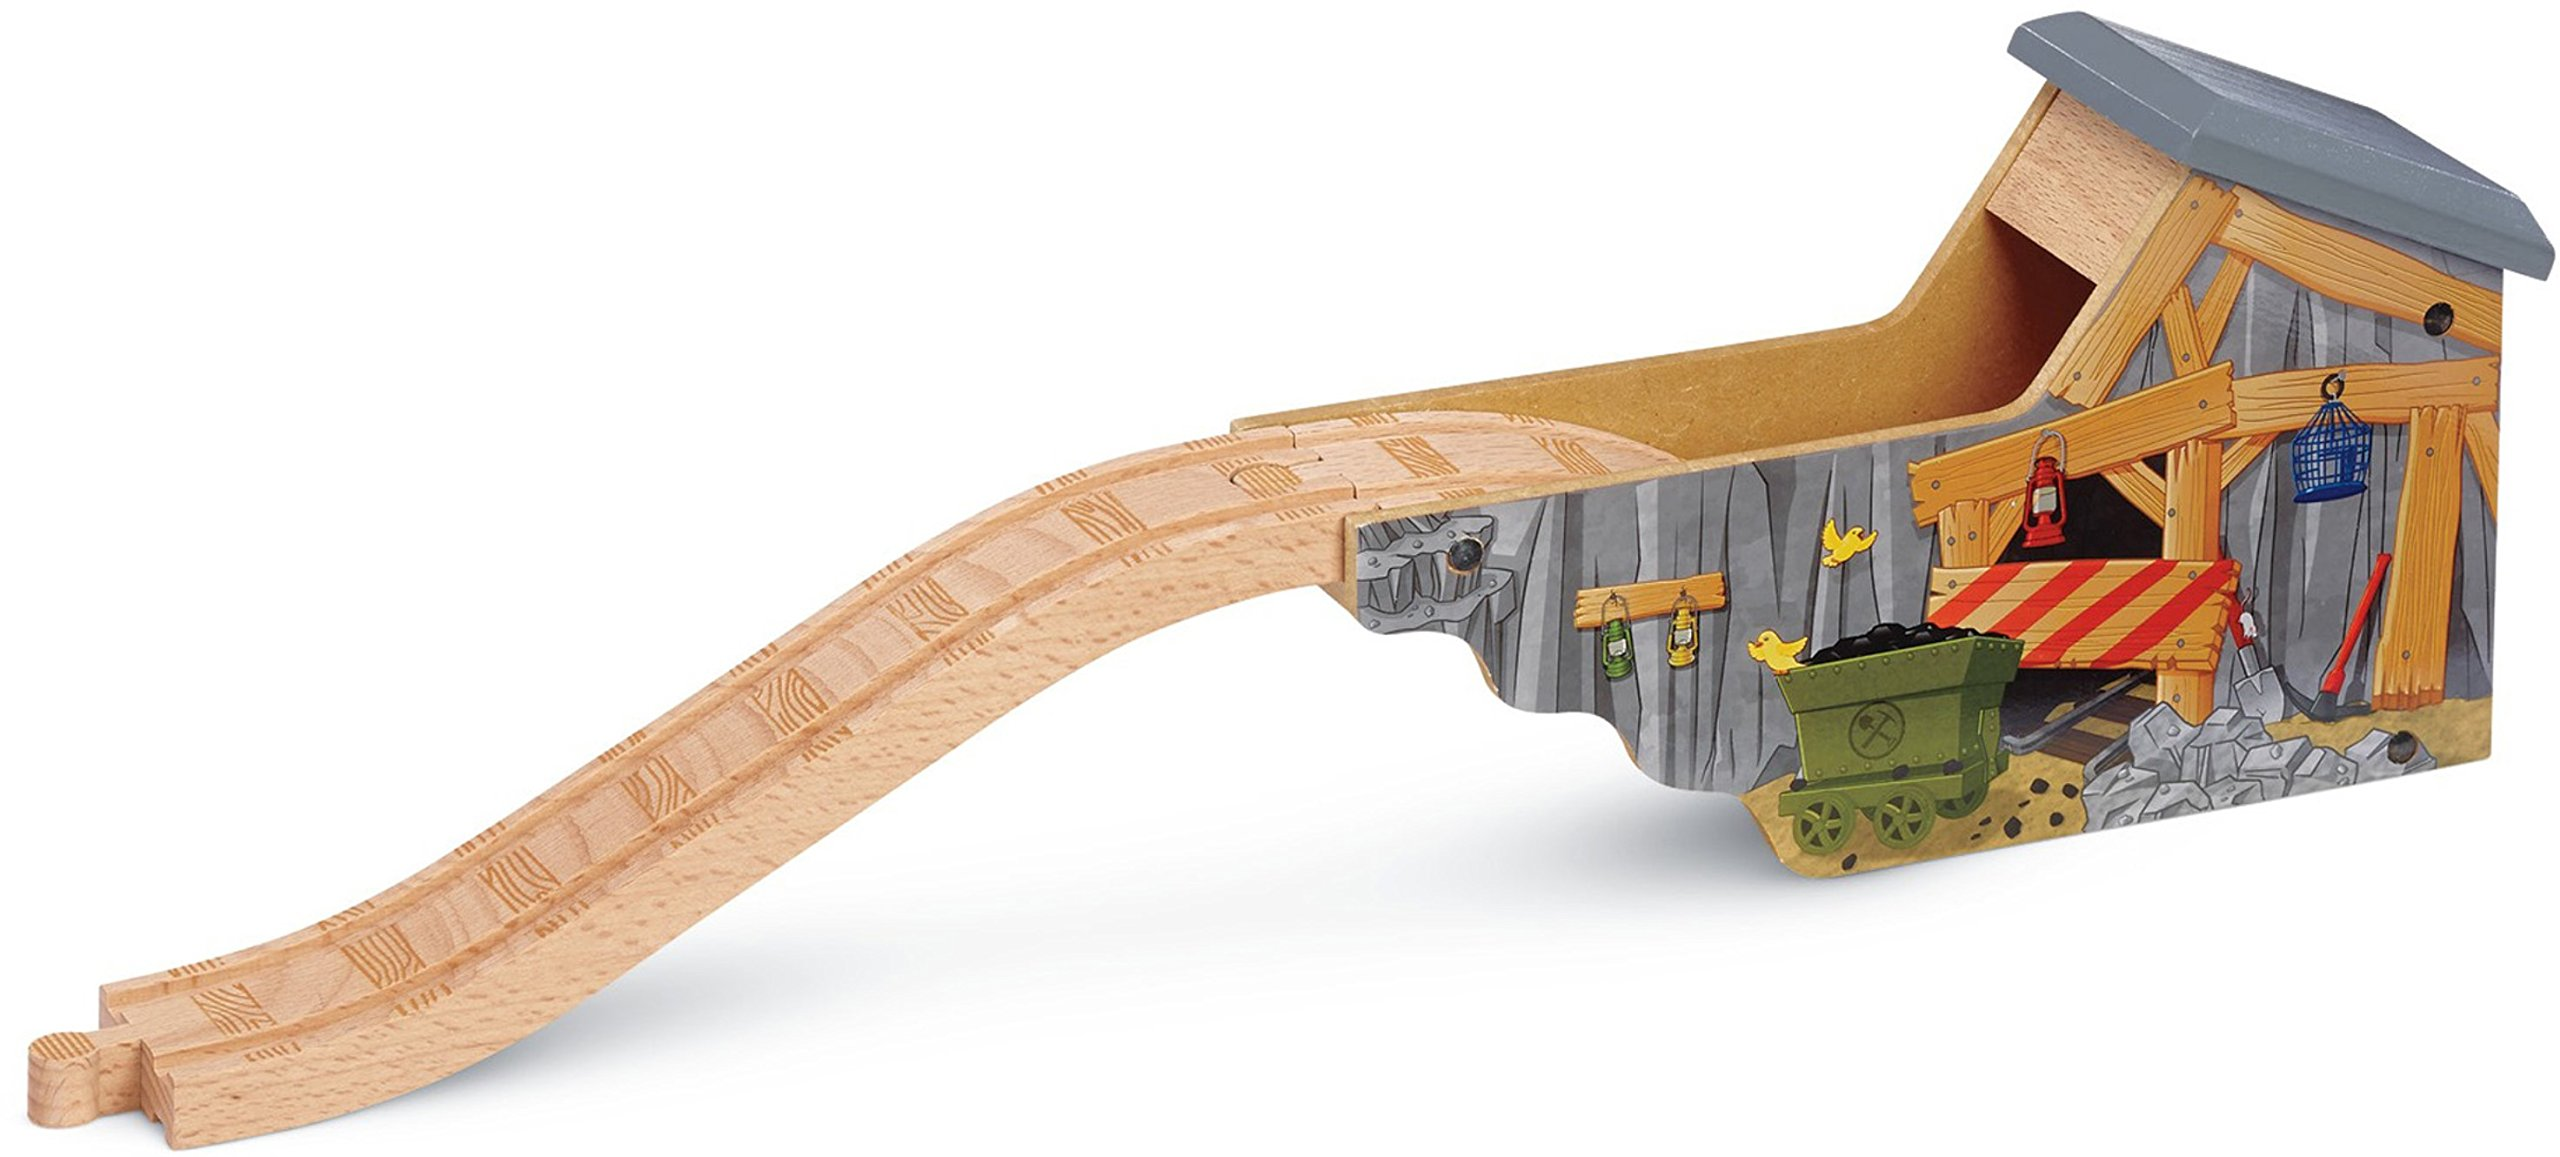 Thomas & Friends Fisher-Price Wooden Railway, Quarry Mine Tunnel Playset